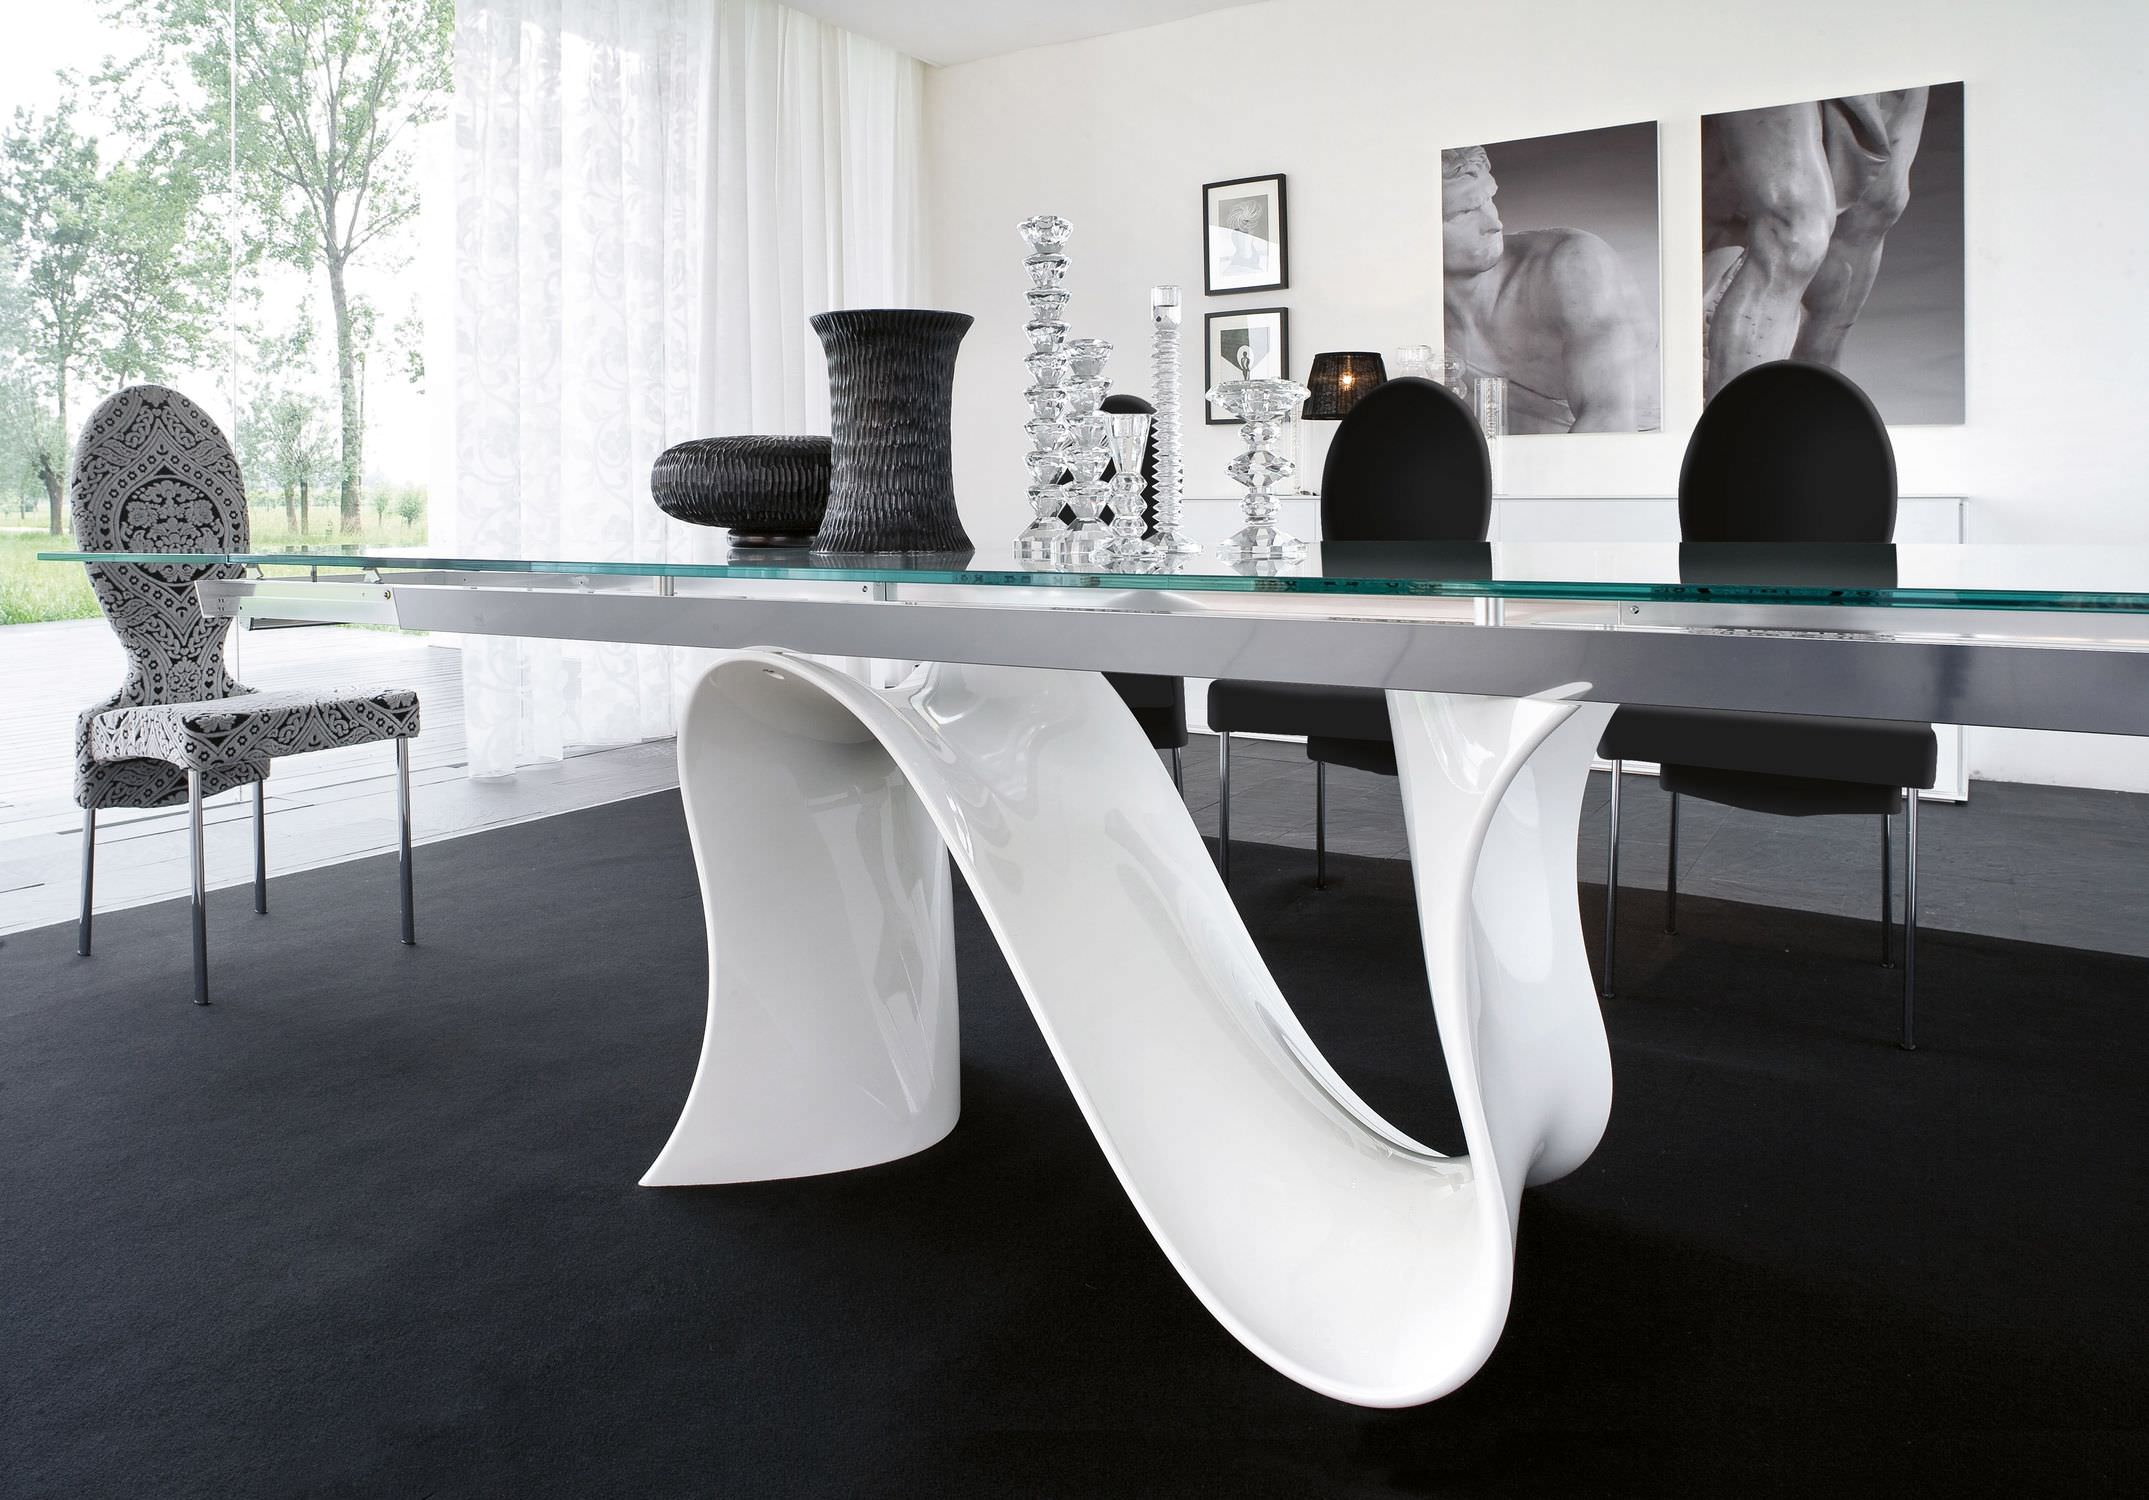 Unbelievable Contemporary Dining Table Design (Image 11 of 11)